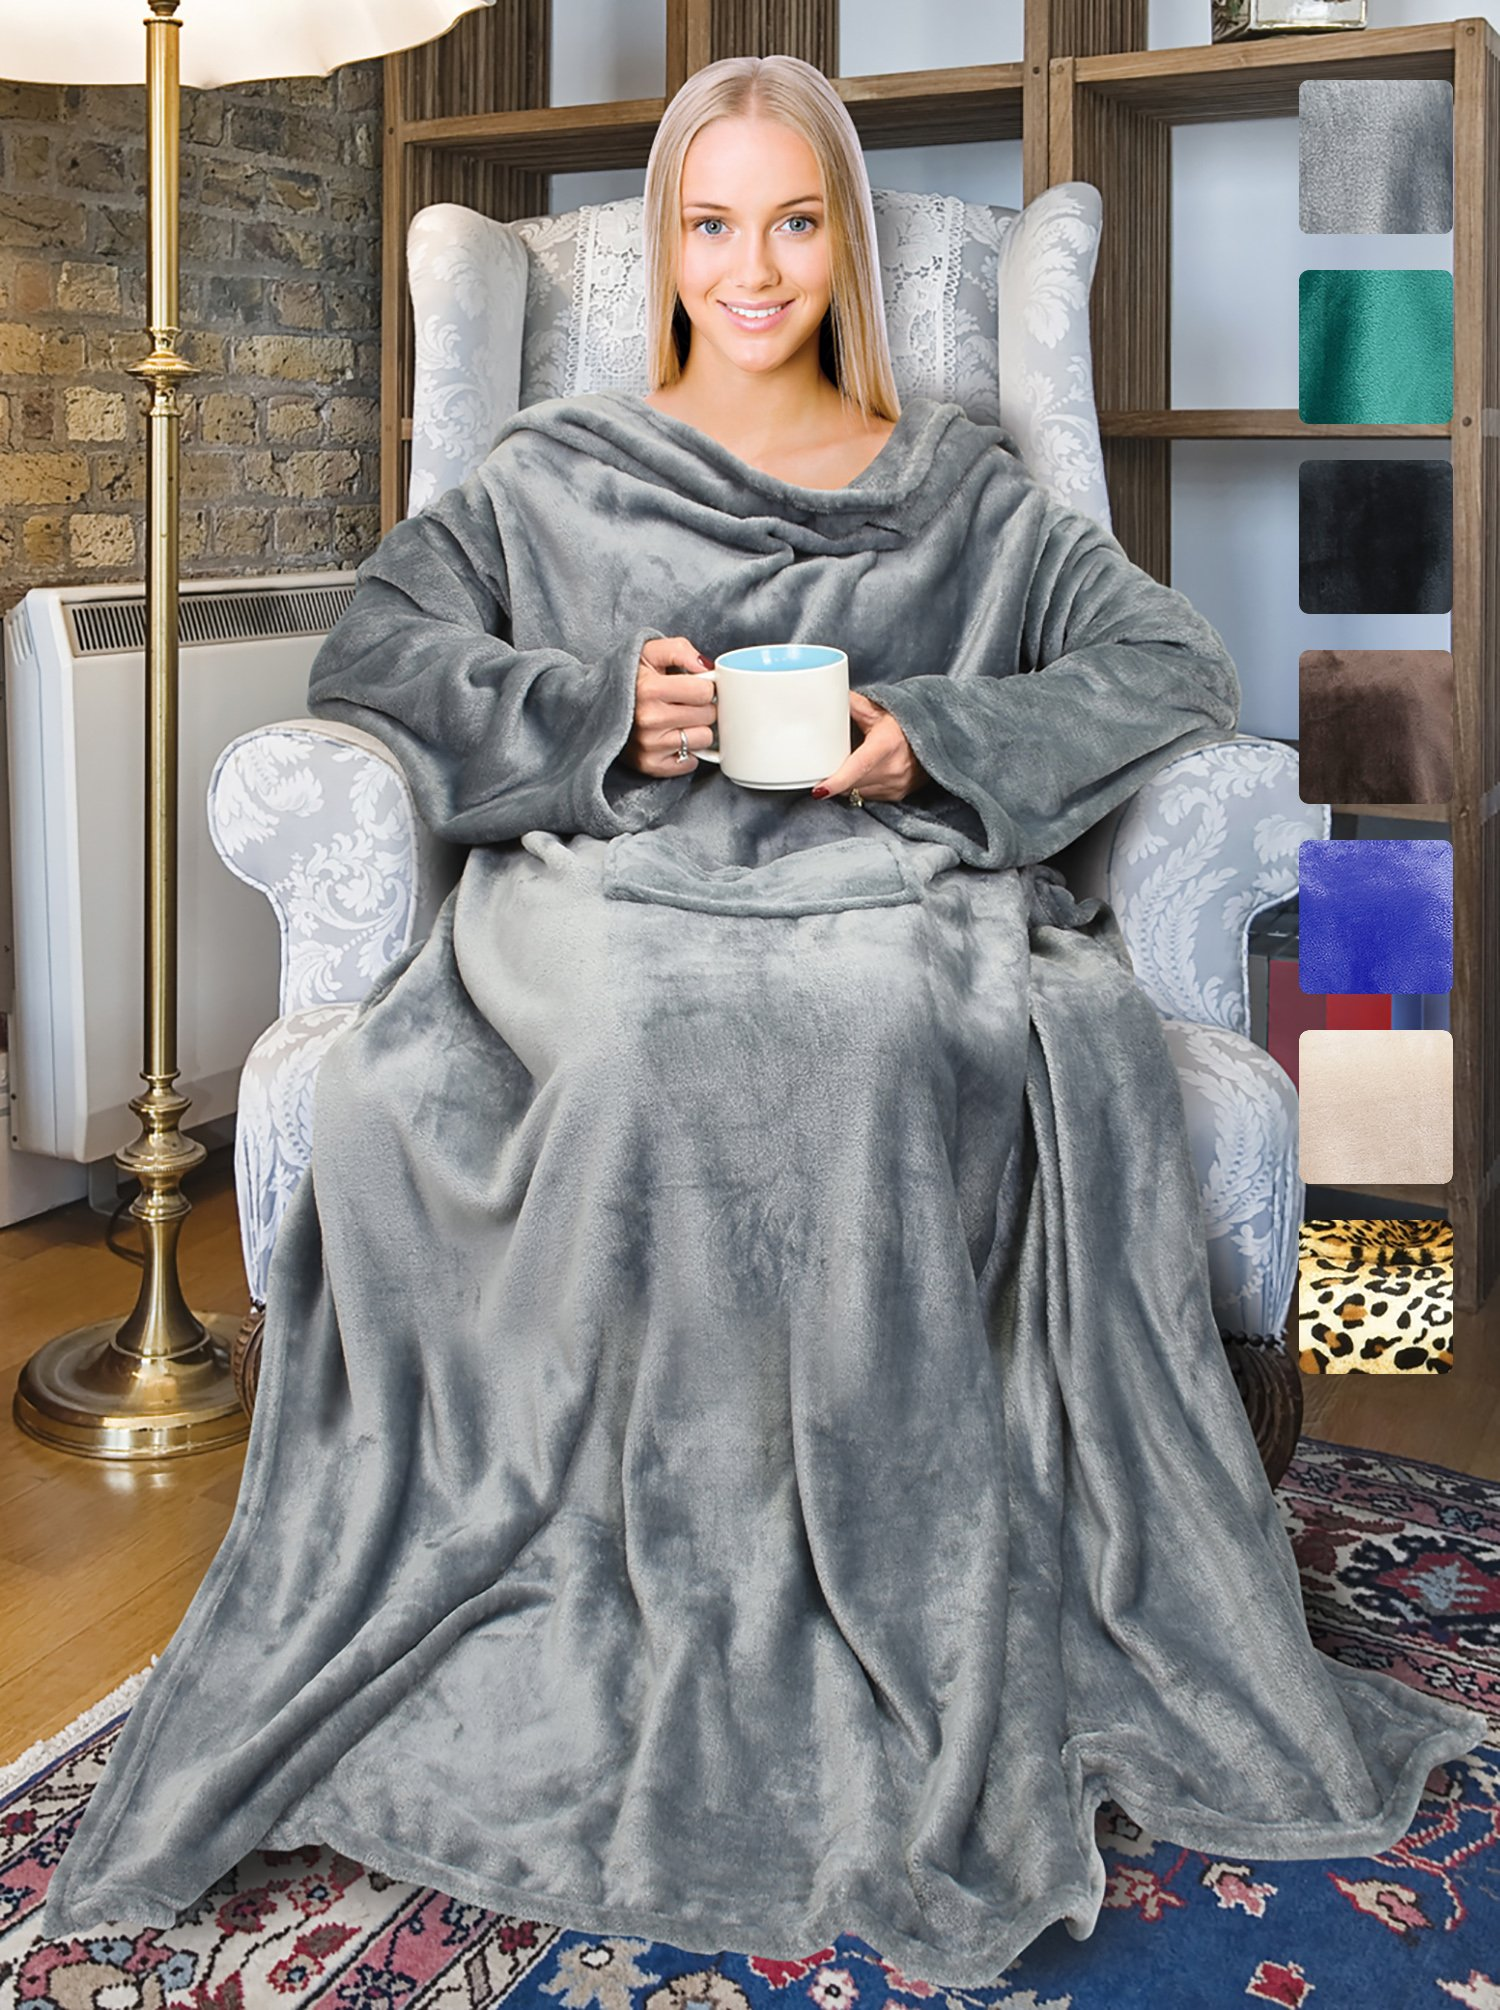 Fleece Wearable Blanket with Sleeves and Front Pocket for Women Men, Super Soft Microplush Adult Comfy Throw with Sleeves for Lounge Couch Reading Watching TV 73'' x 51'' Grey